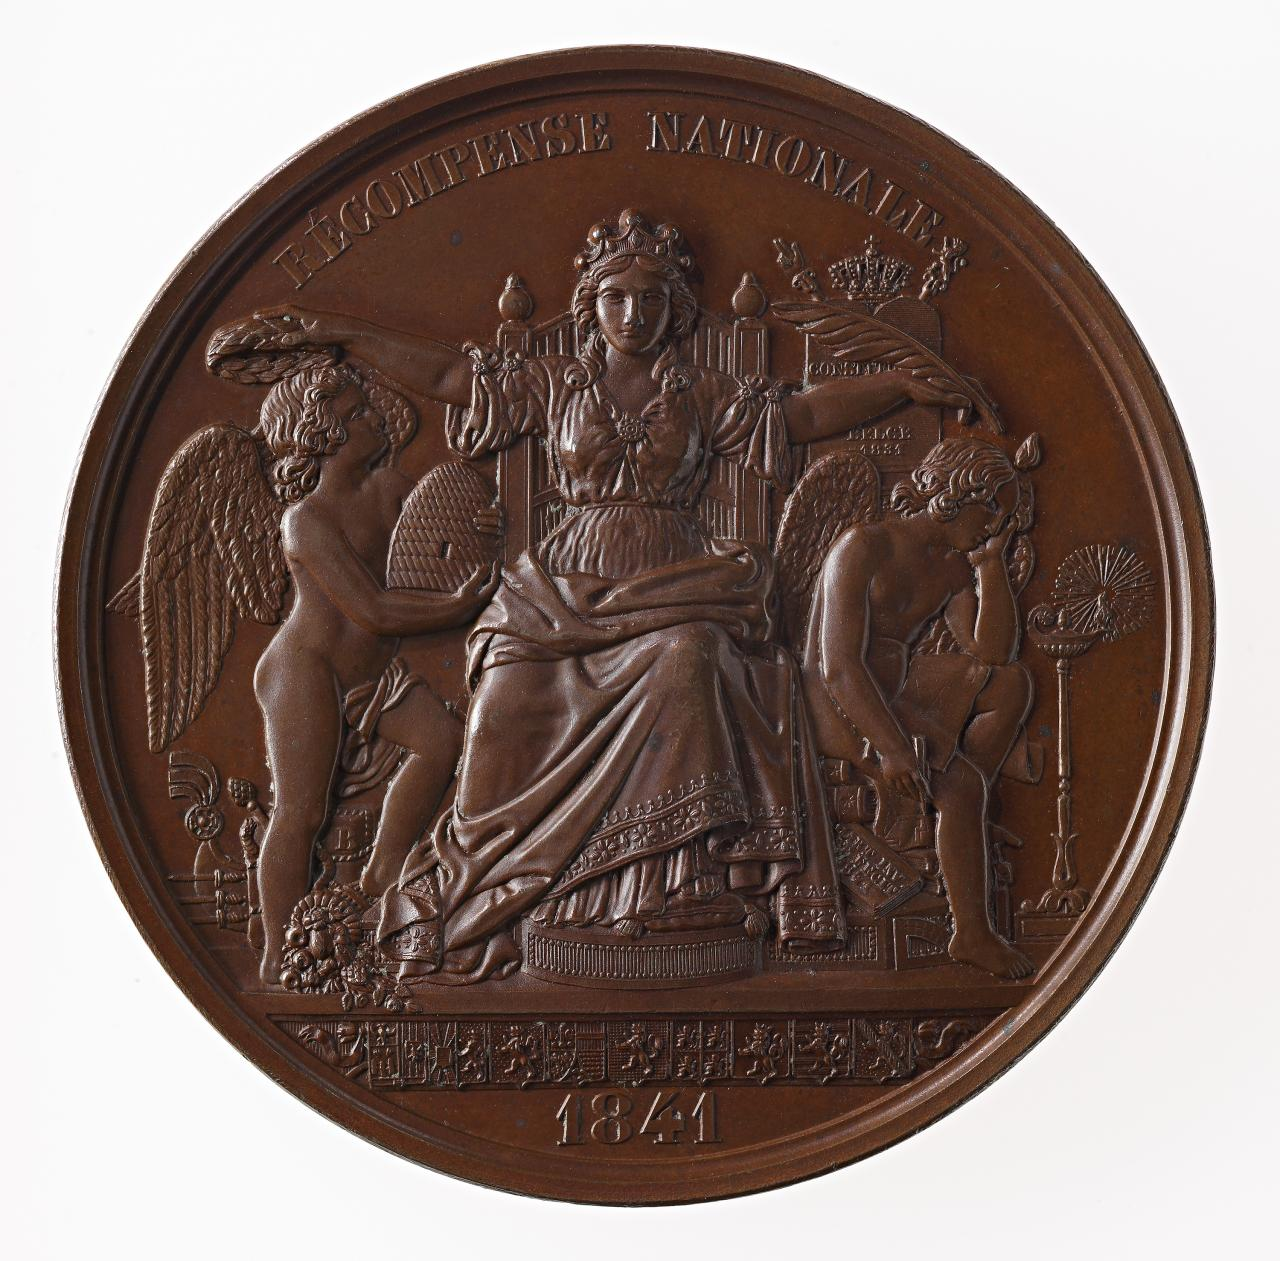 Exposition of the Products of National Industry Brussels 1841, prize medal